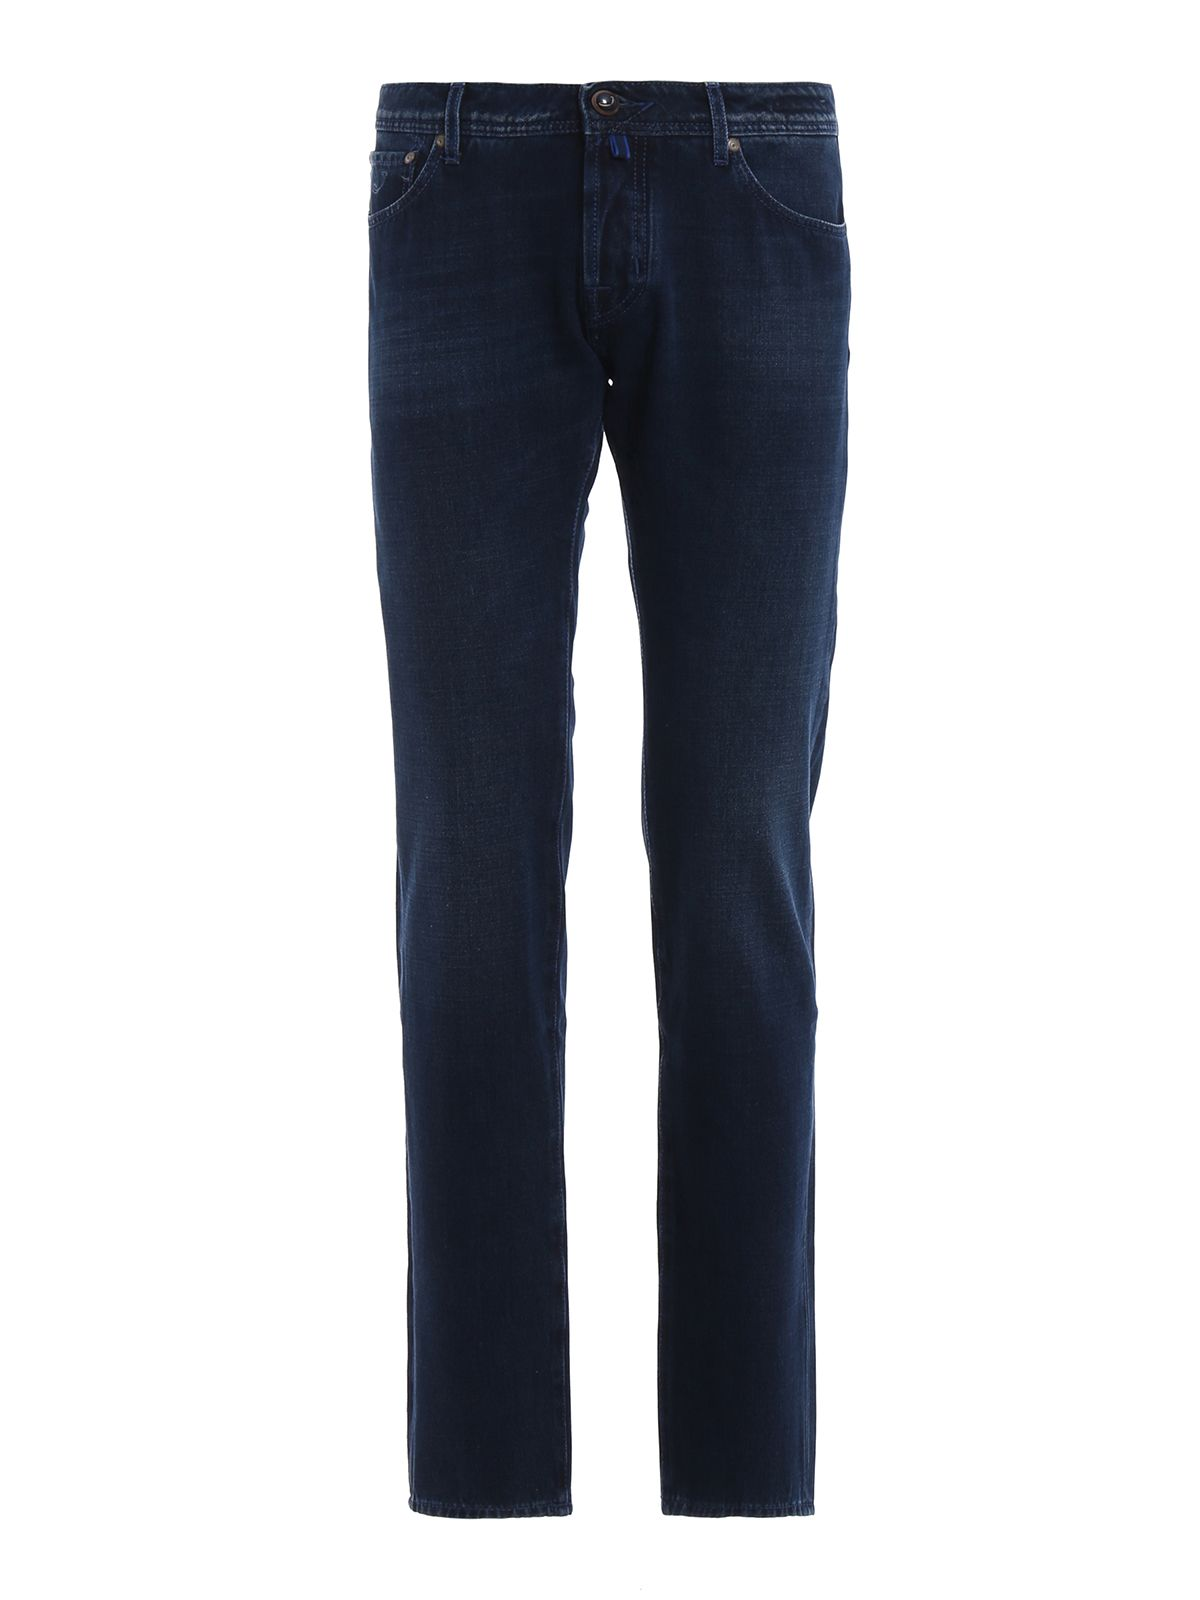 Jacob Cohen J622 Comf Natural Indigo Garment Dyed Jeans